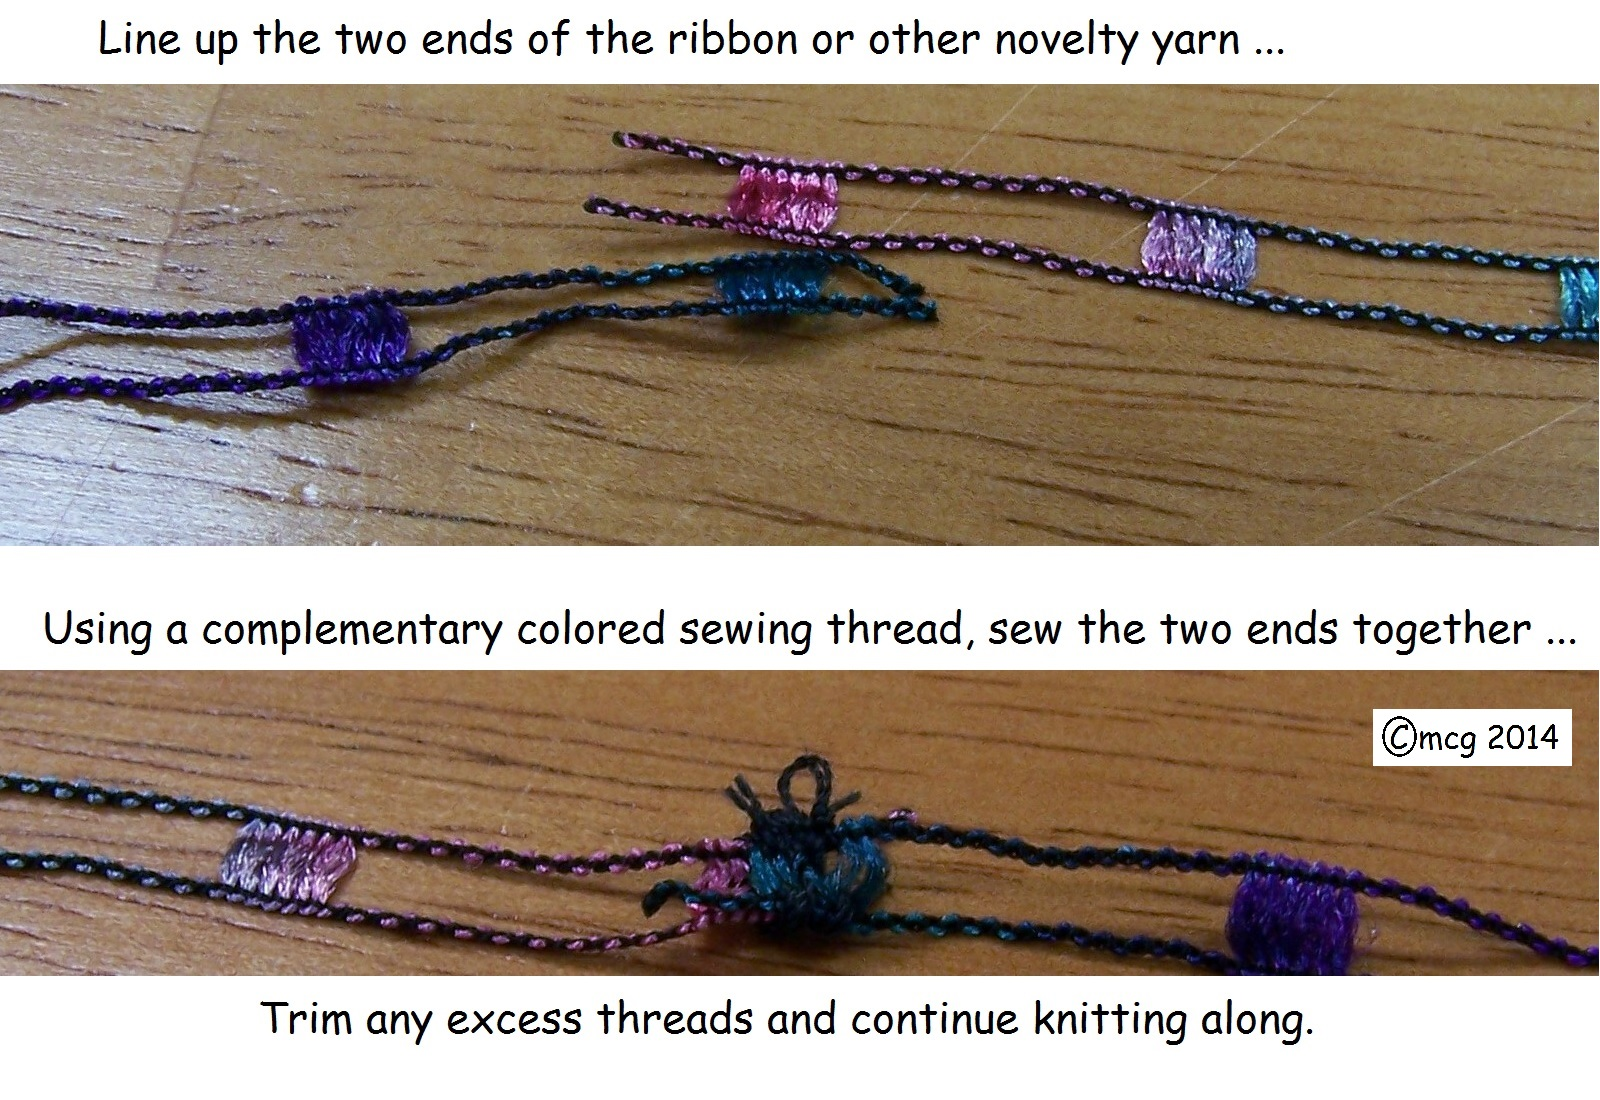 Knitting Joining Yarn Knot : Tips tuesday u2013 to knot or not u2026 that is the question! : by